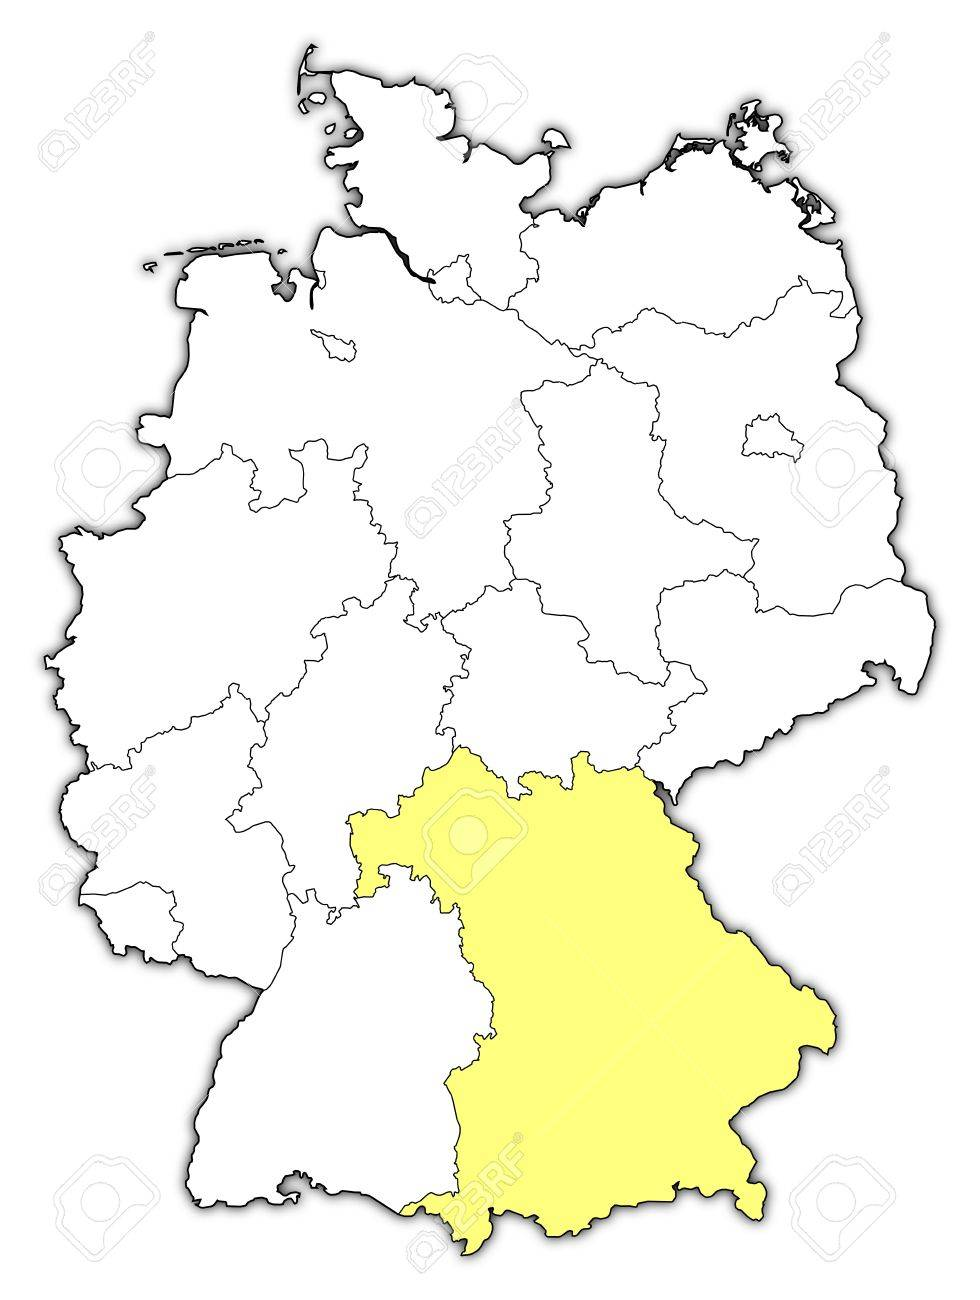 Political Map Of Germany With The Several States Where Bavaria - Germany map bavaria